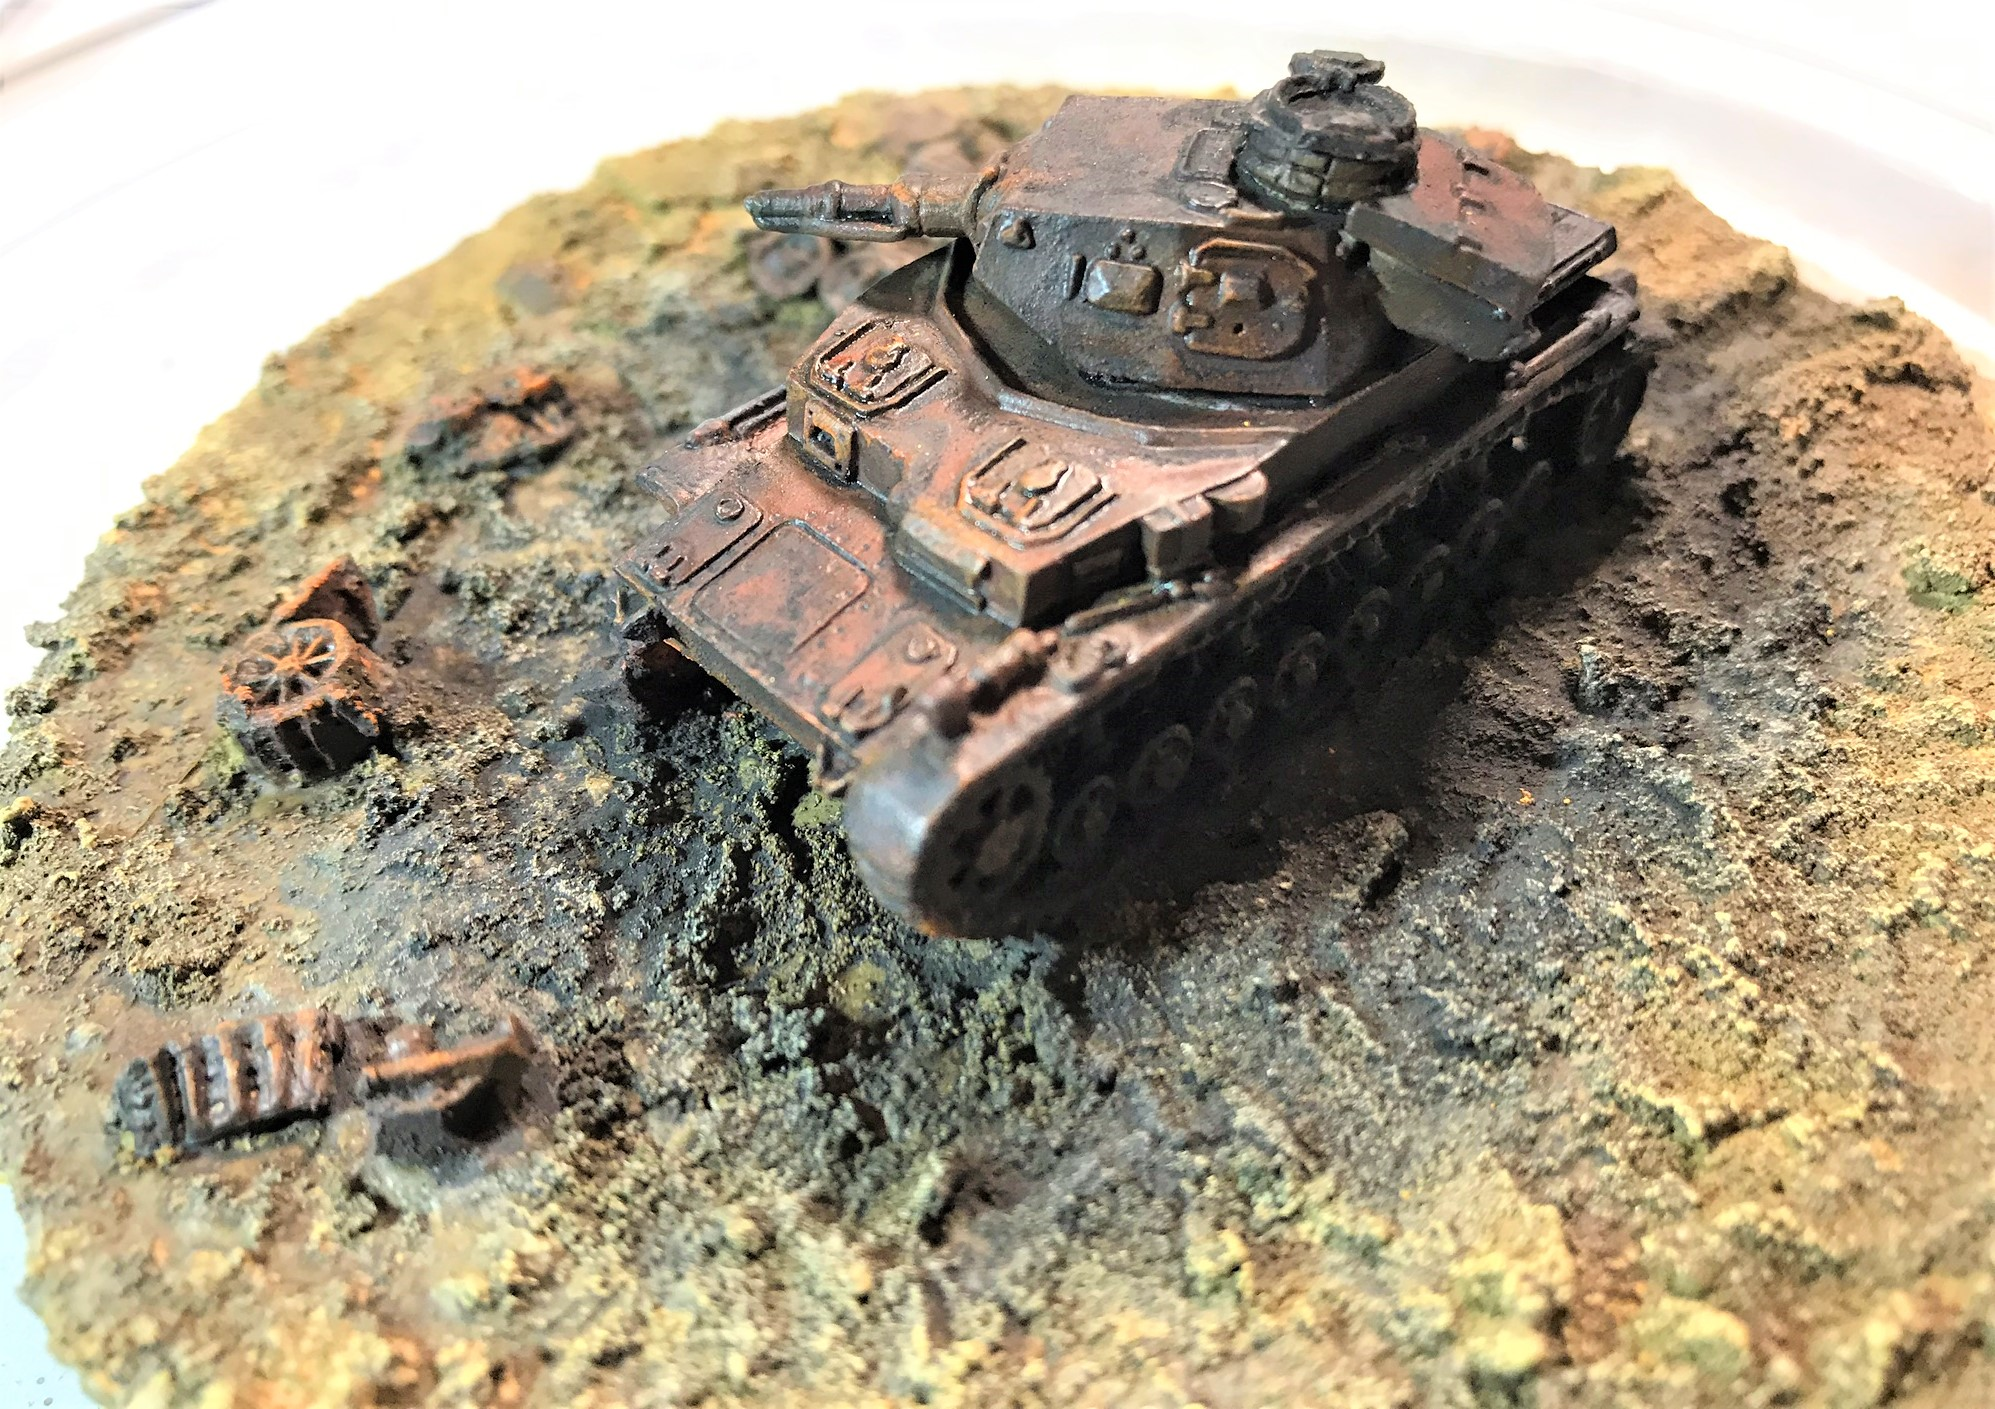 10 pigments and weathering and rust, left side